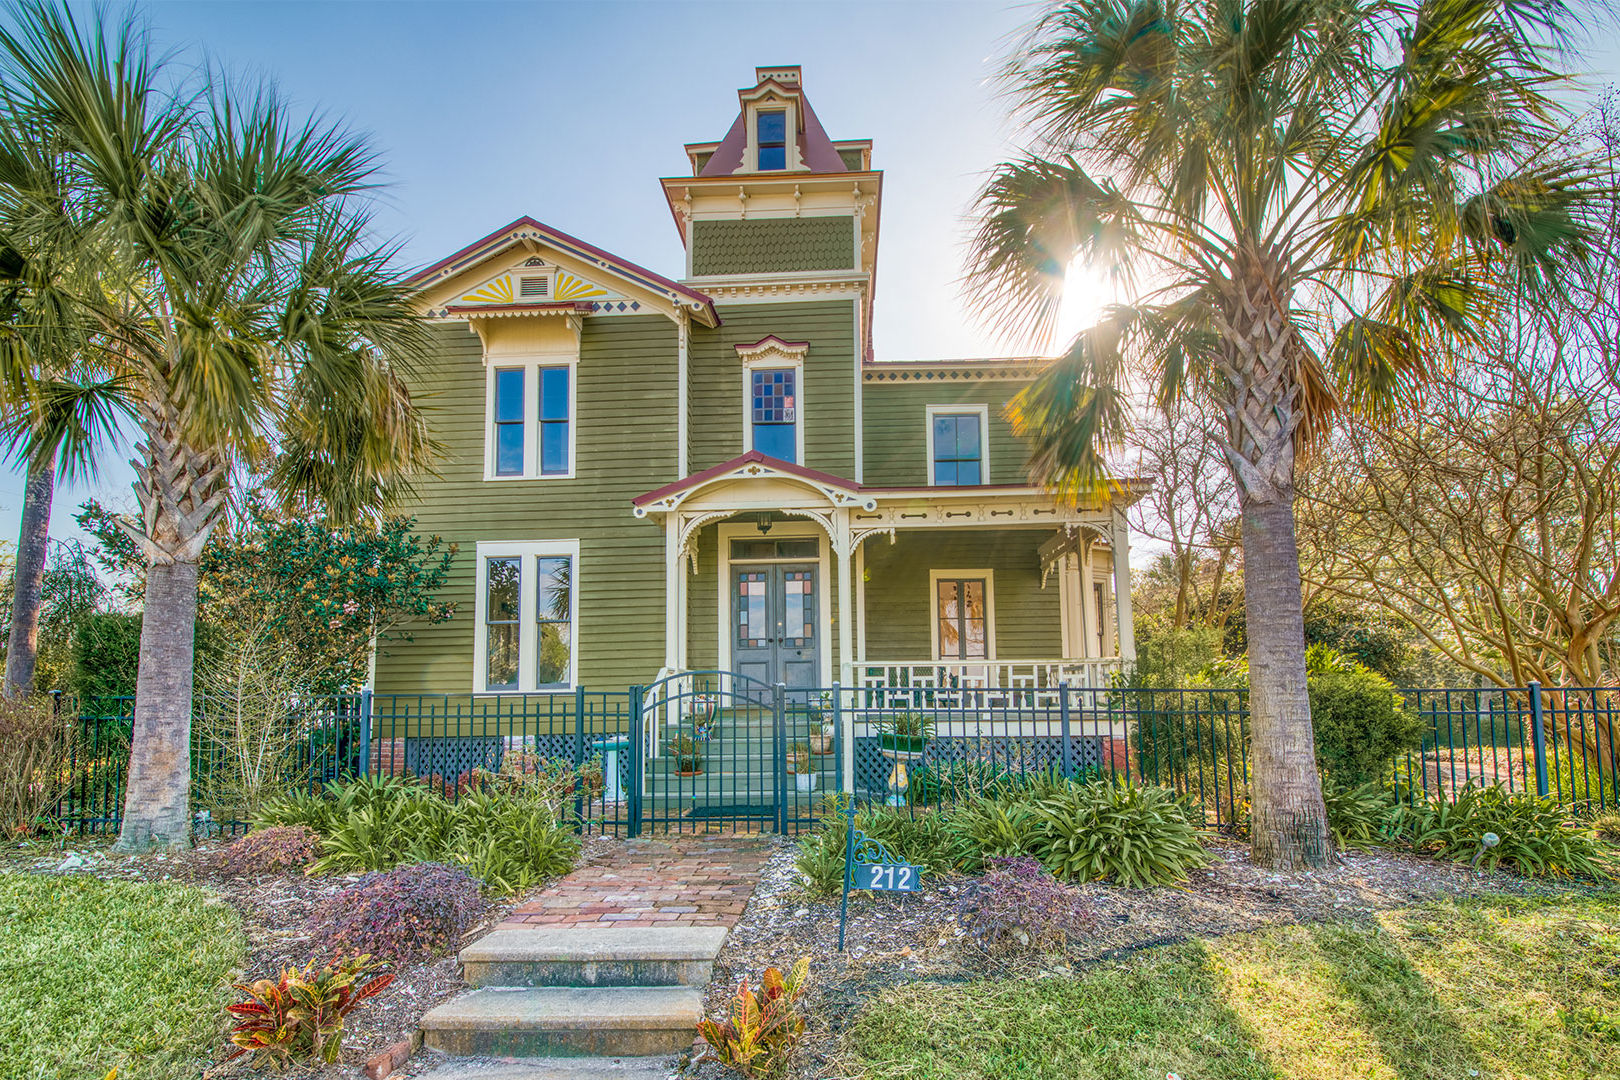 Checking Out Pippi Longstocking From >> Check Out Pippi Longstocking S House For Sale In Florida S Beautiful